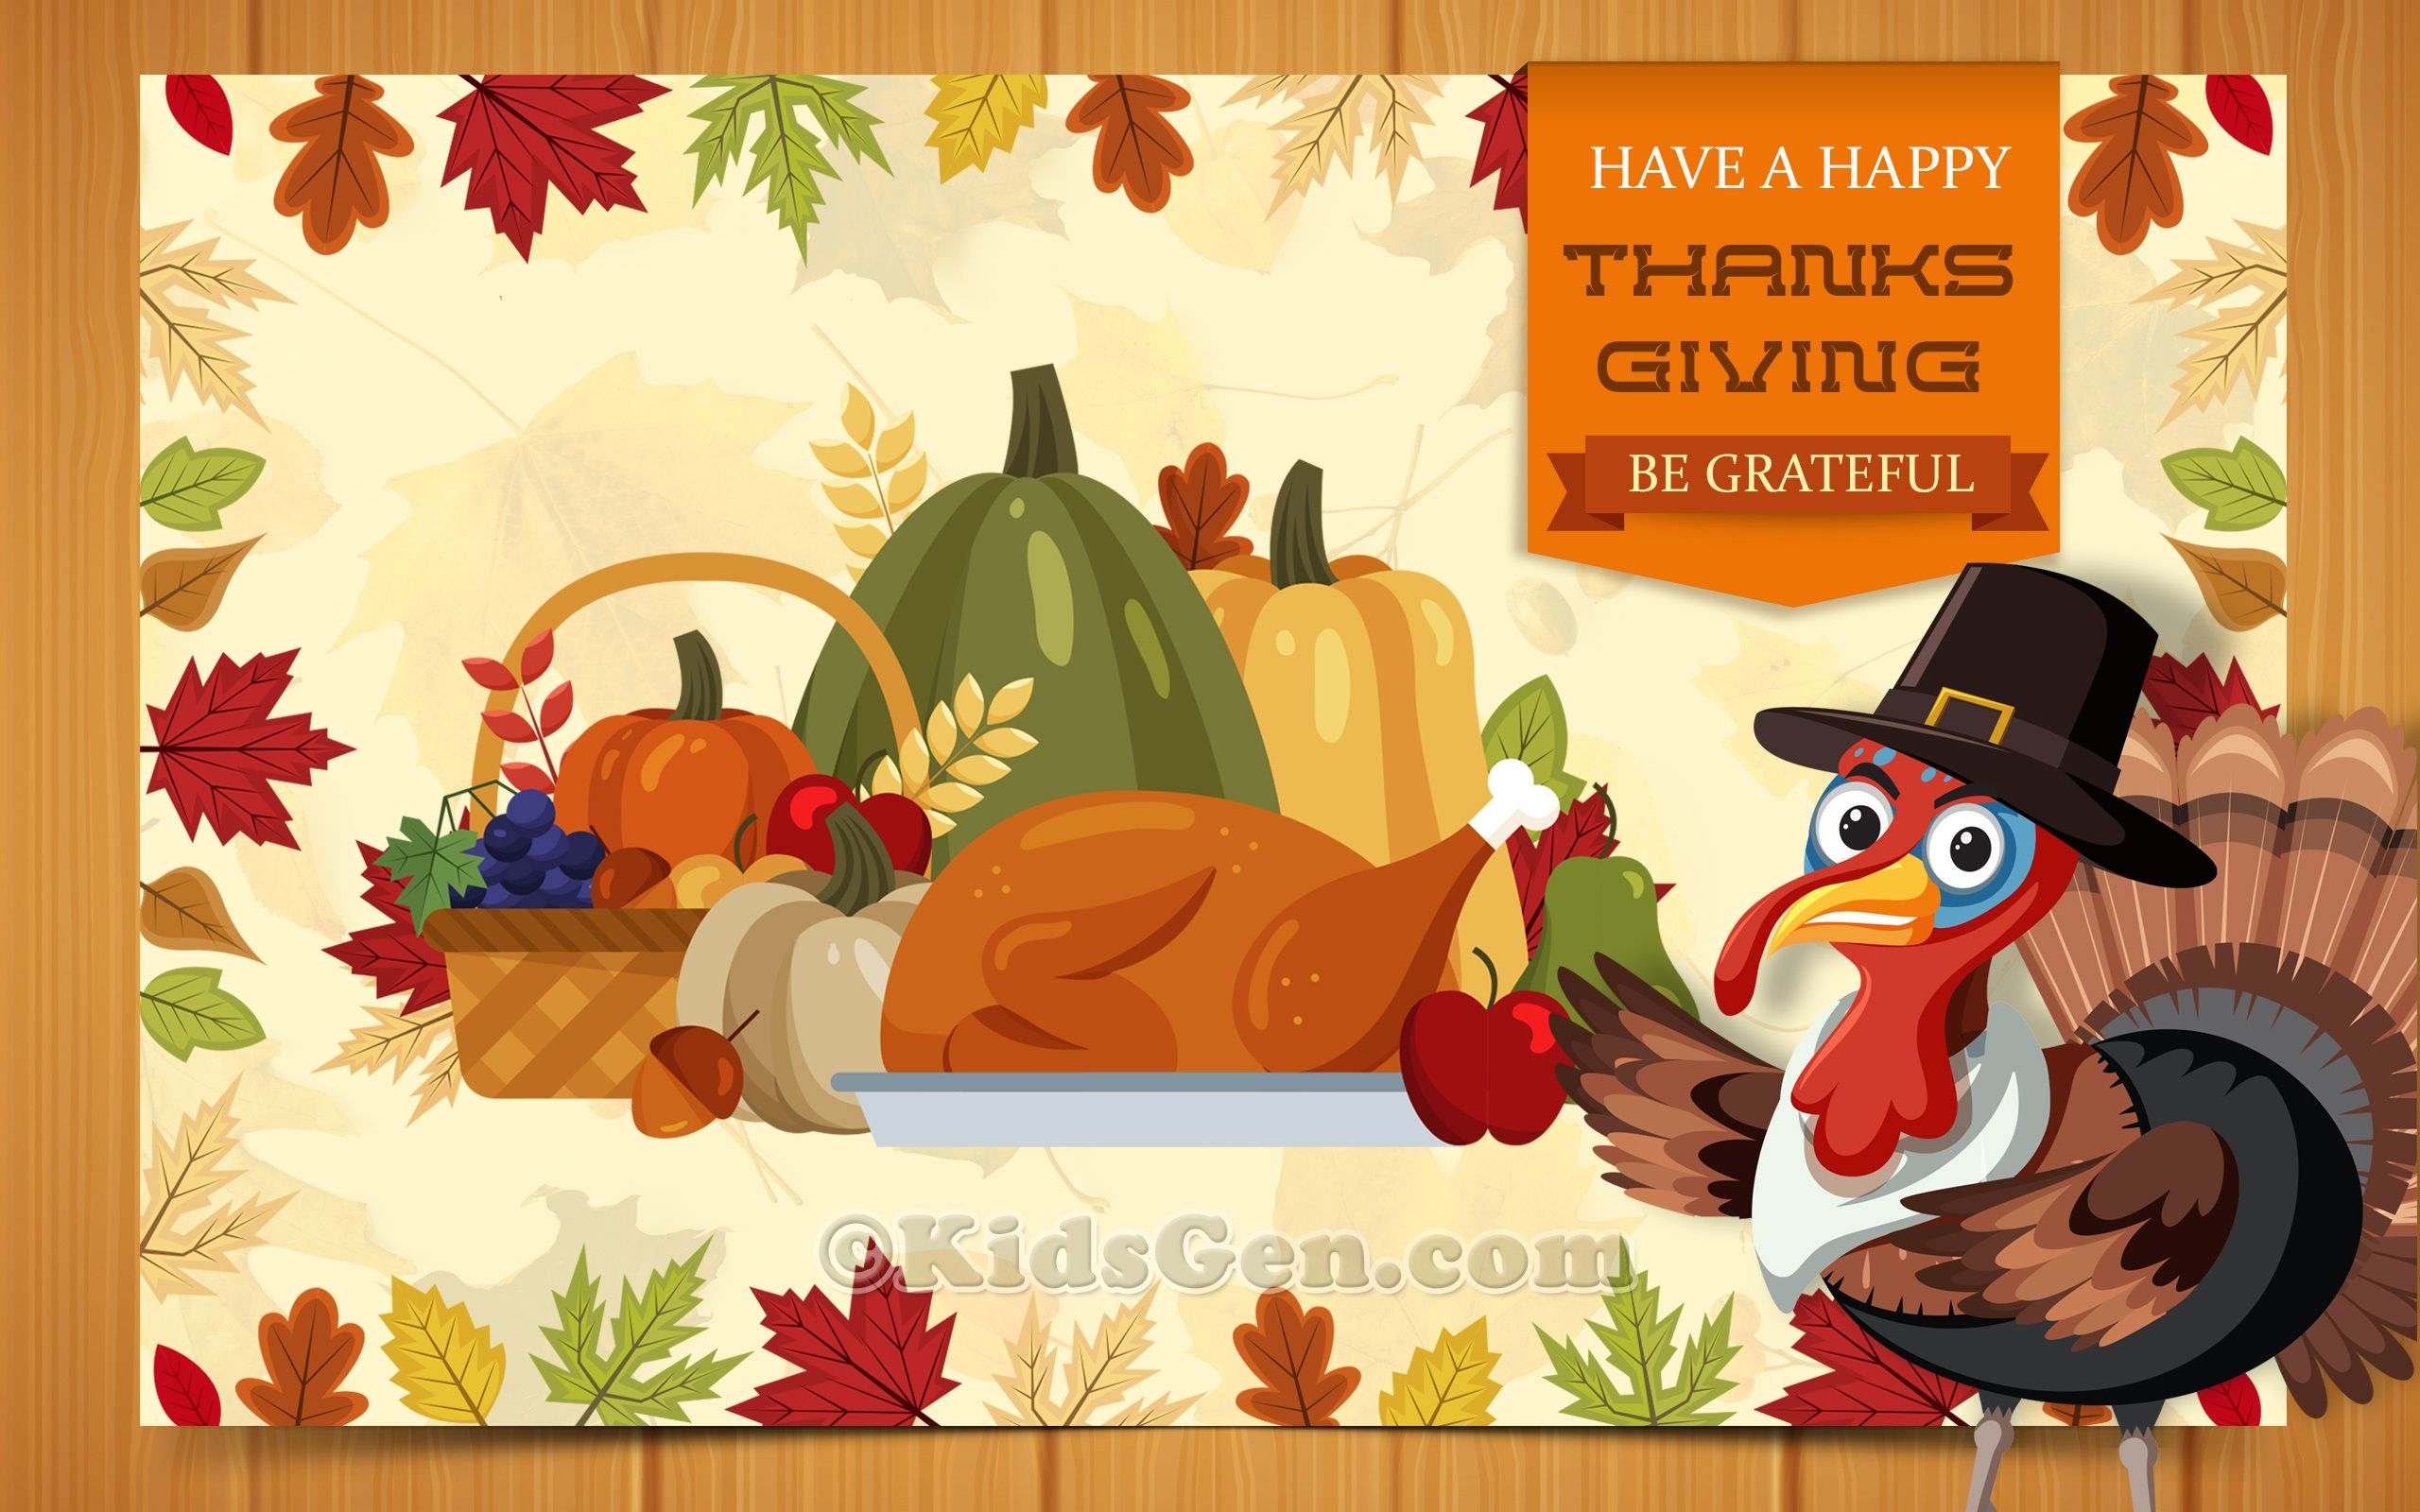 Wallpapers for Thanksgiving